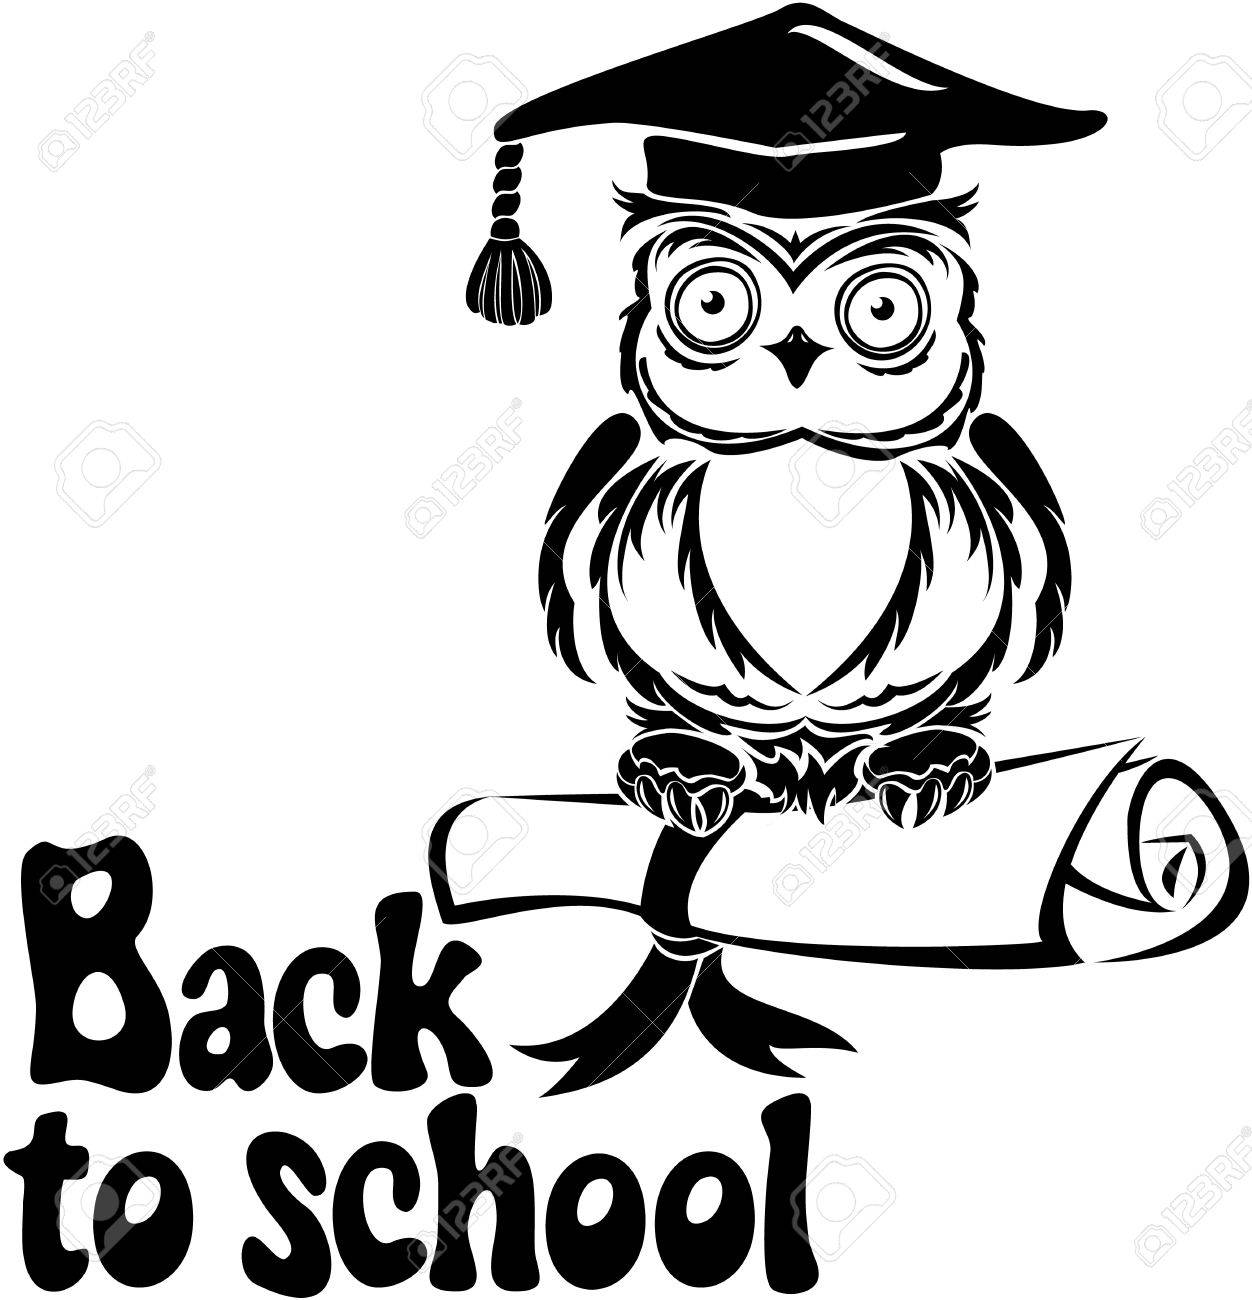 Free coloring pages graduation caps - Owl Hat Decorative Bird Owl With Graduation Cap And Book Isolated On White